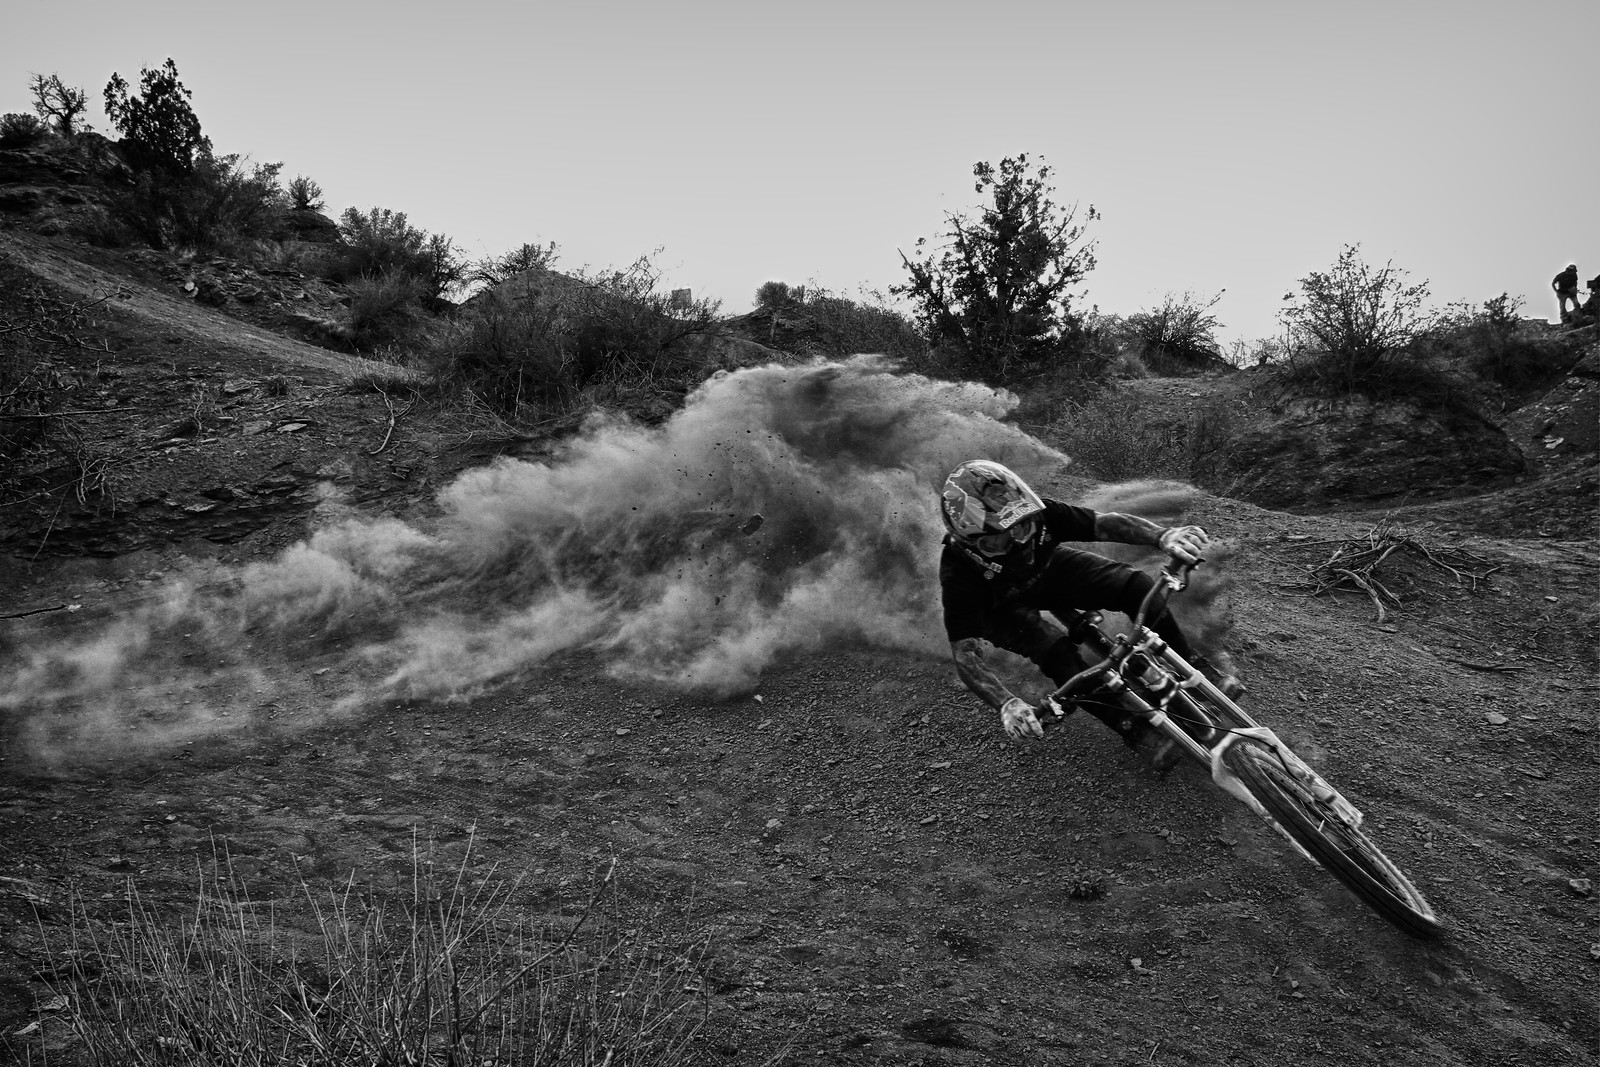 Andreu Lacondeguy - Malcolm Mclaws - Mountain Biking Pictures - Vital MTB